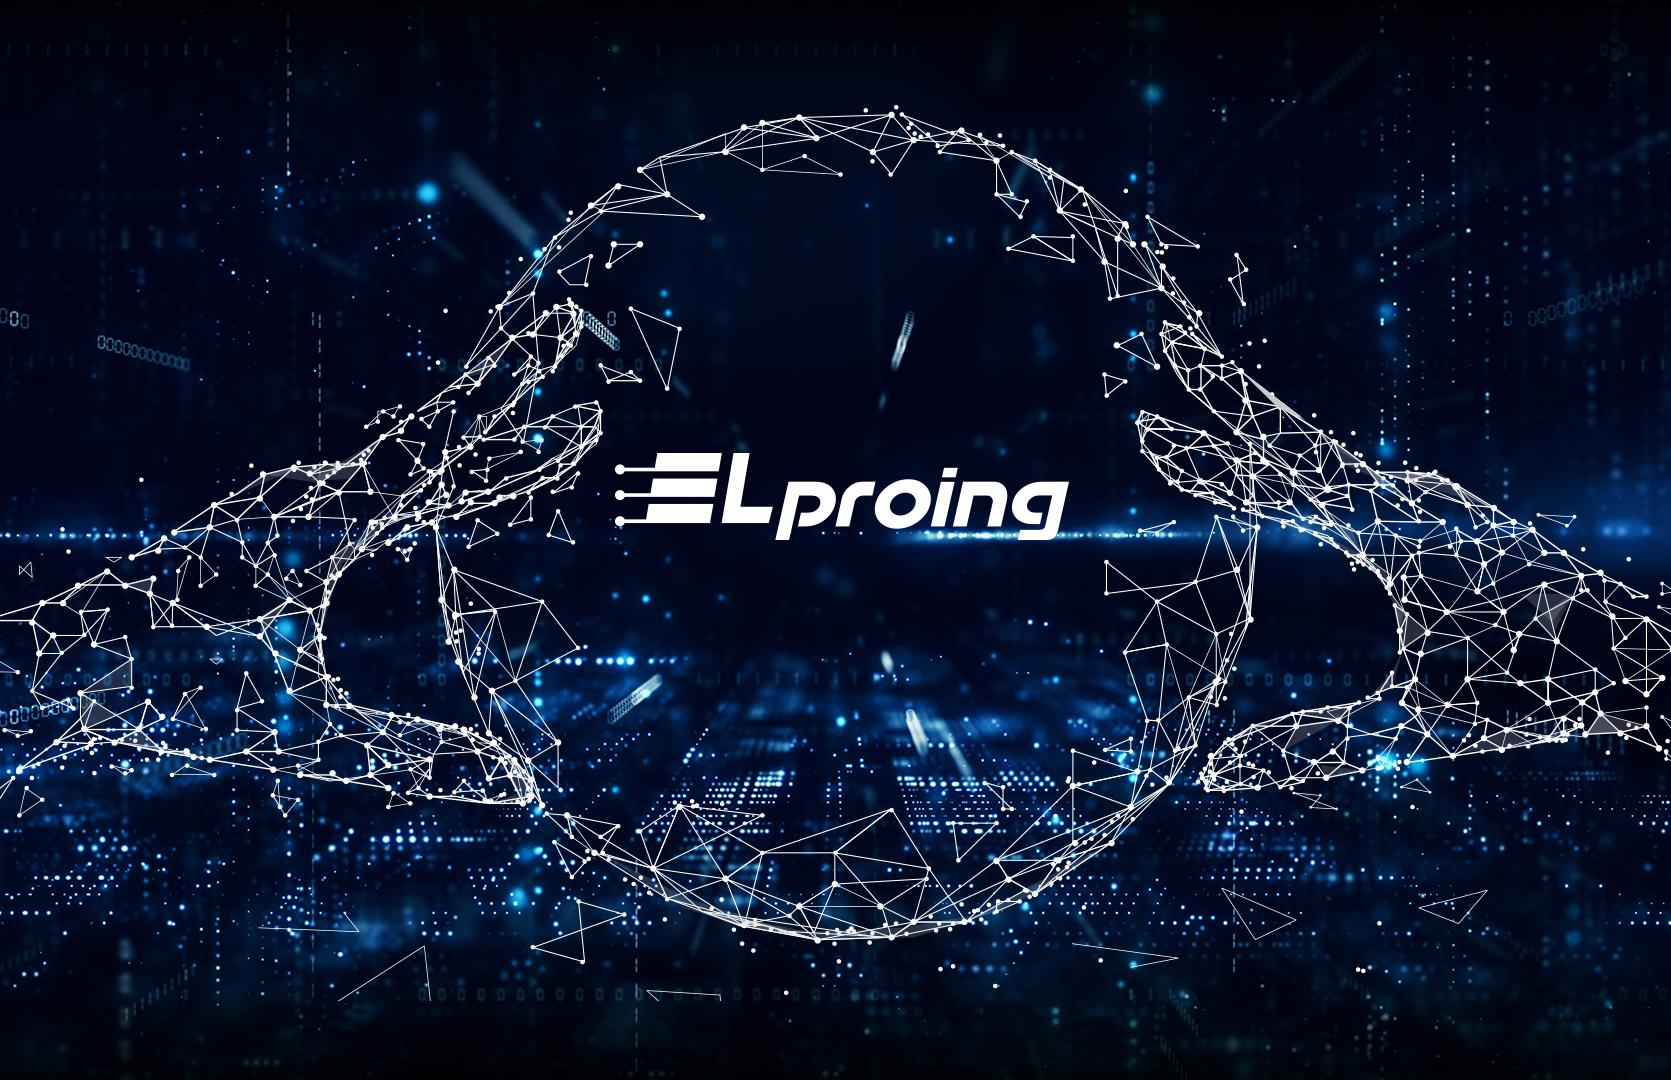 Elproing